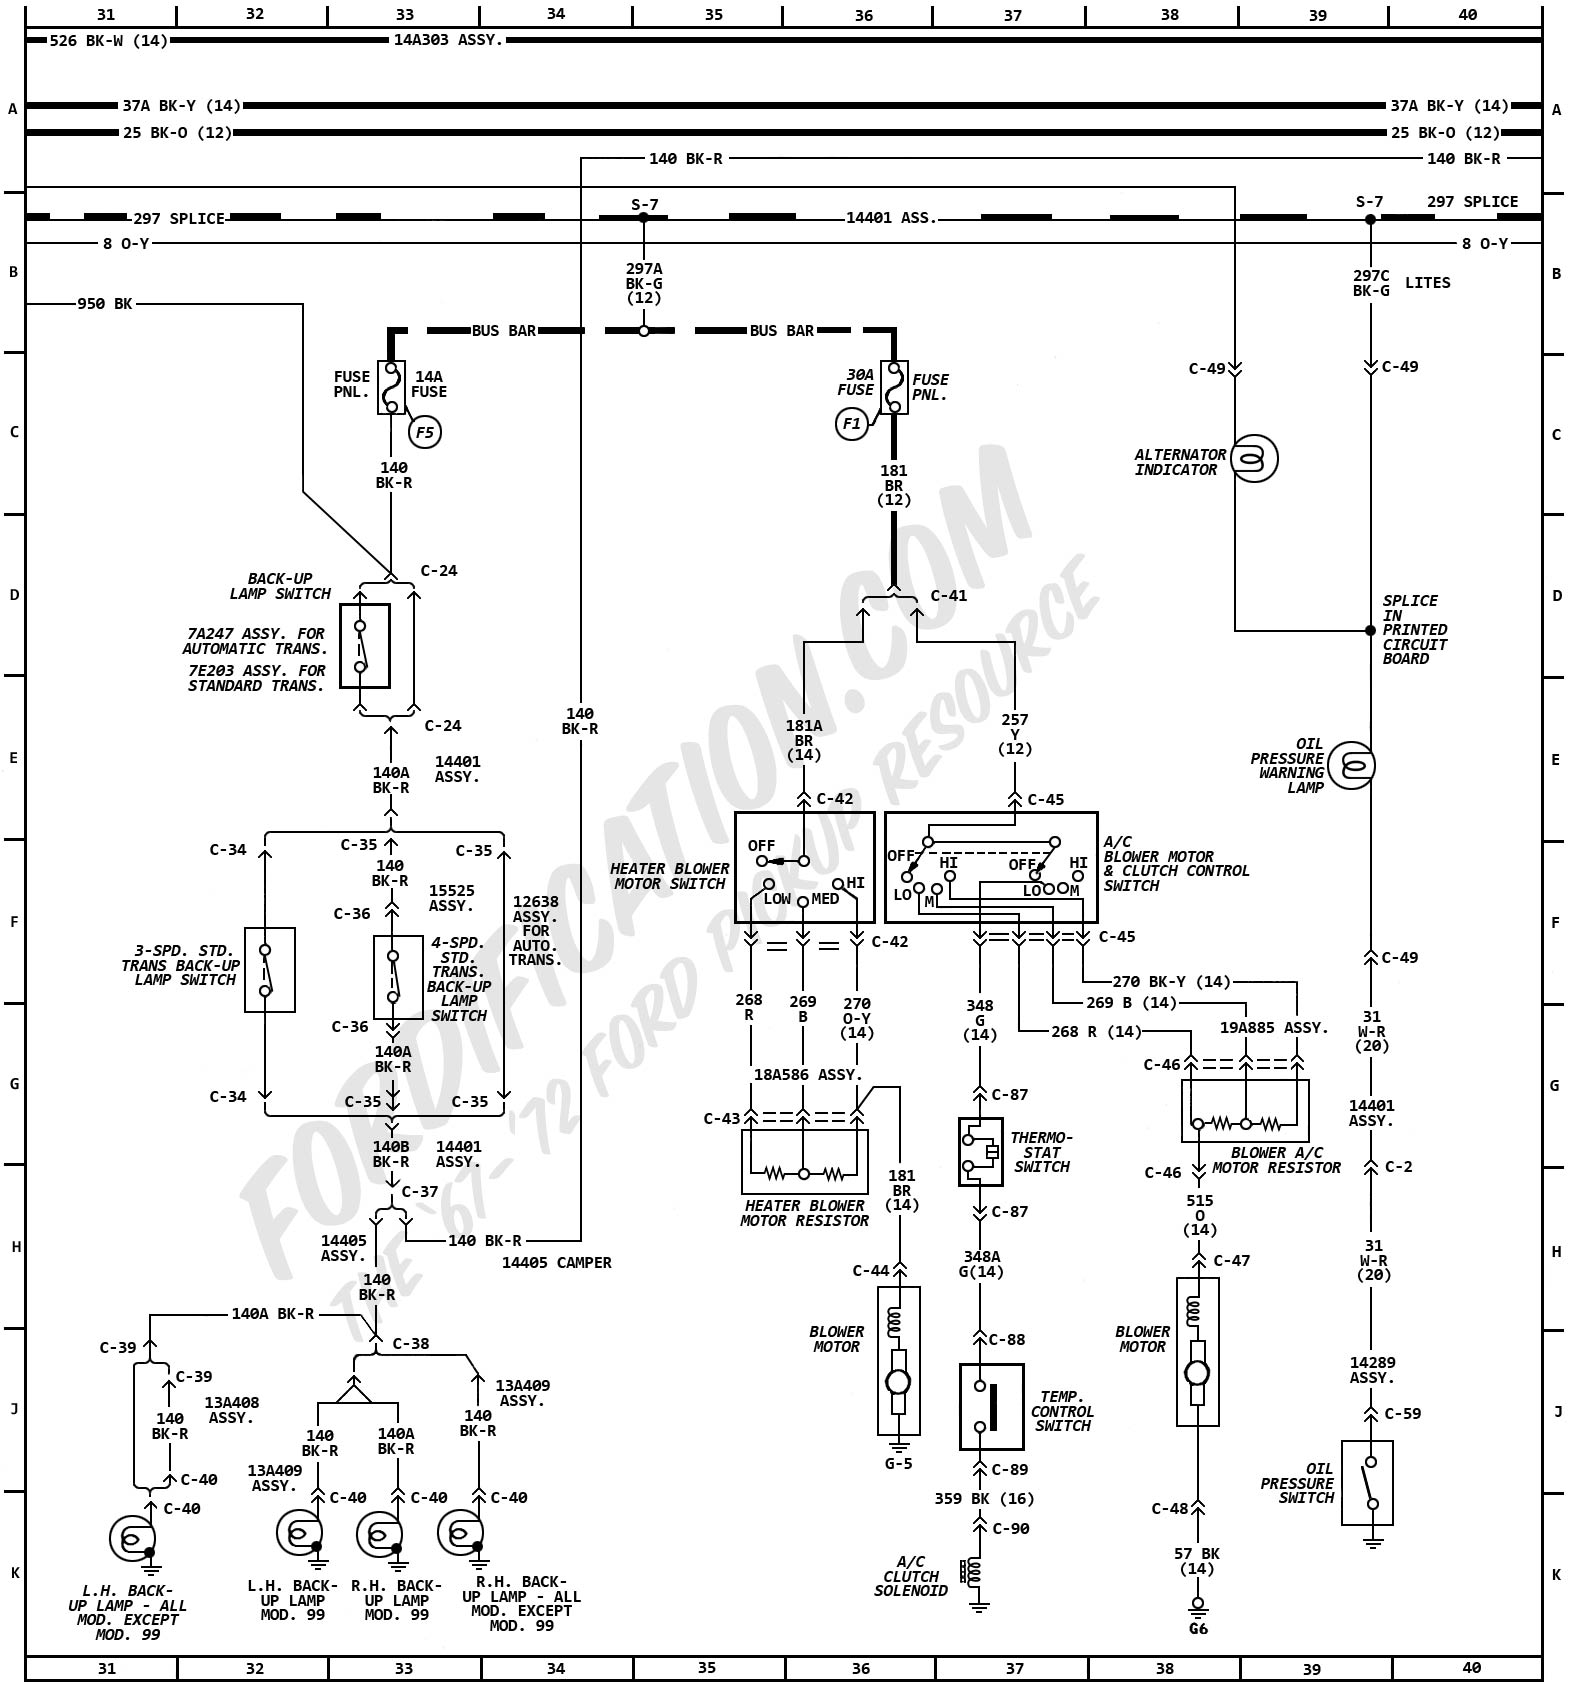 Wiring Diagram 1978 Chevy Blower - Wiring Diagram Data on relay for blower motor, wiring diagram for dryer motor, wiring diagram for car motor, fuse for blower motor, wiring diagram for furnace motor, wiring diagram for air conditioner motor,